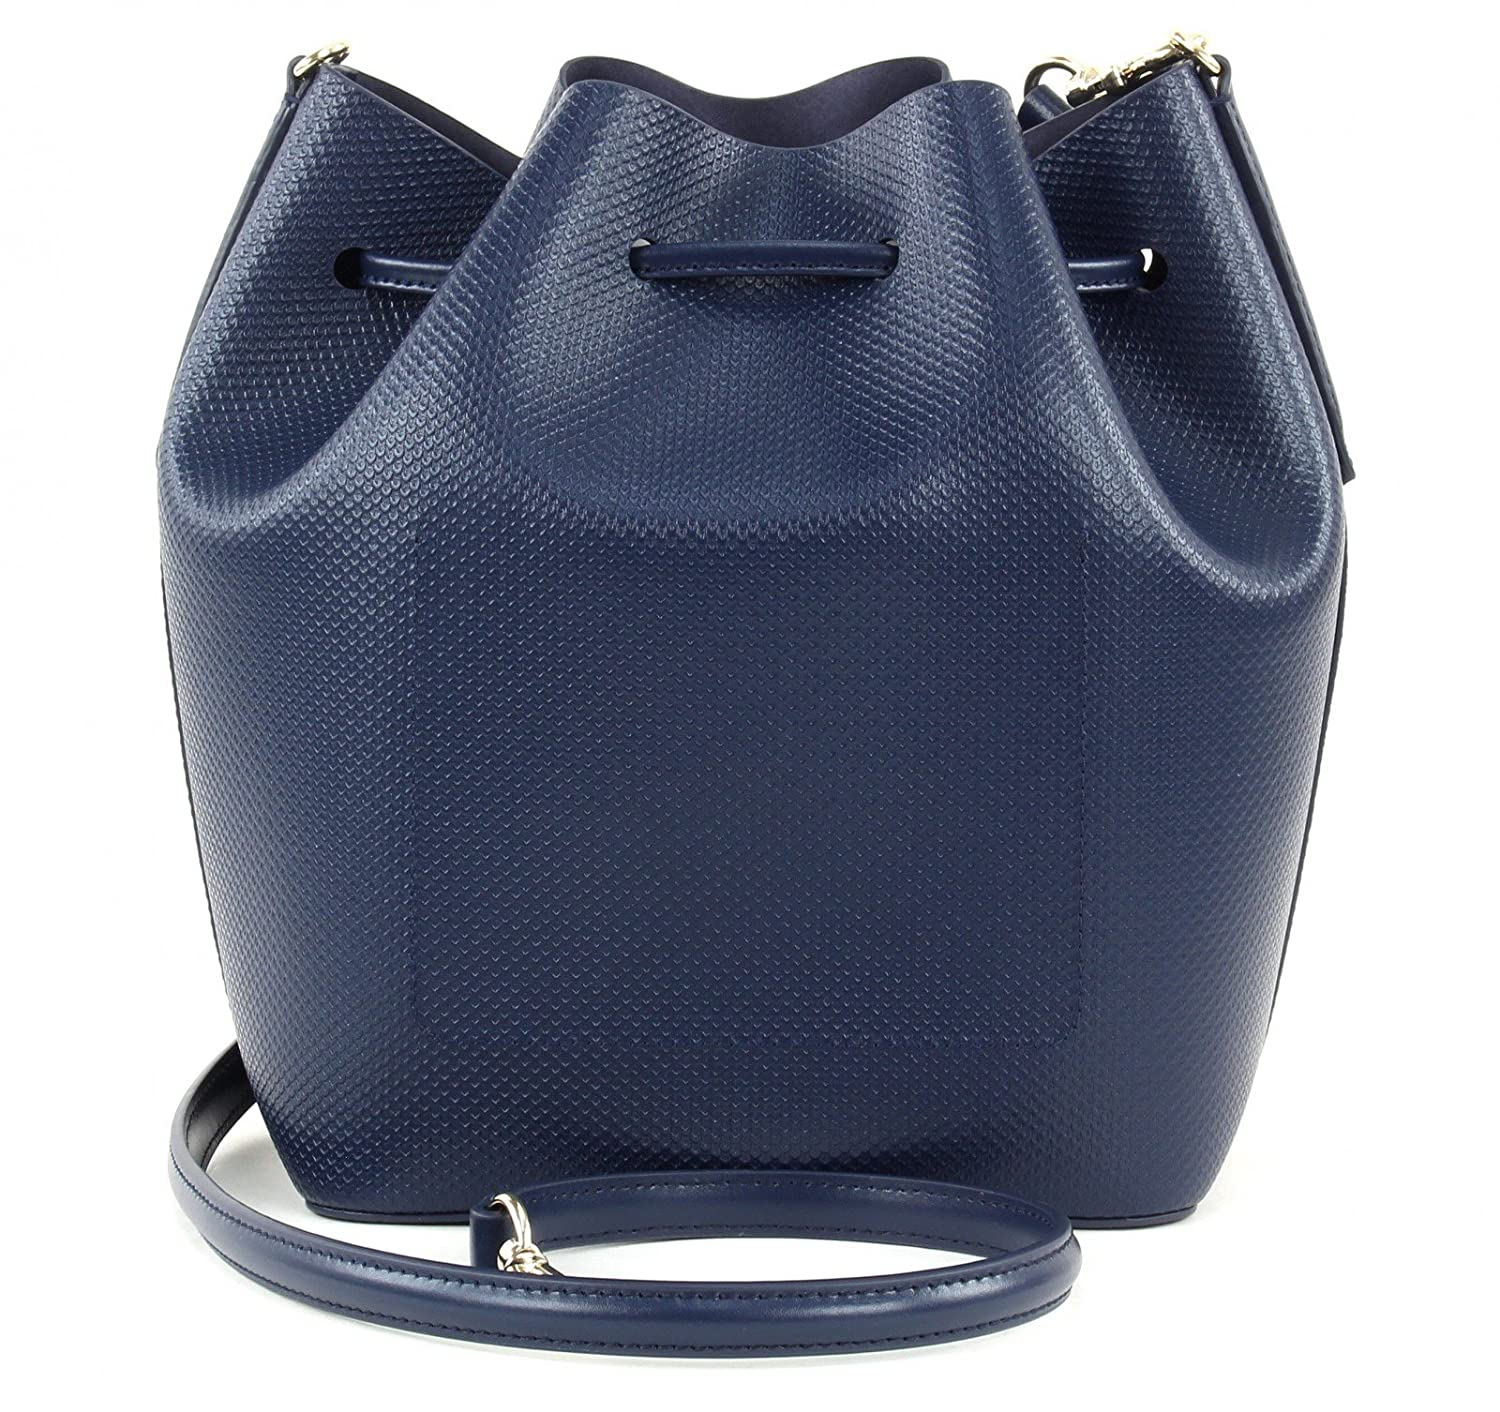 6d52899ca3 LACOSTE Chantaco Bucket Bag Peacoat: Amazon.co.uk: Shoes & Bags